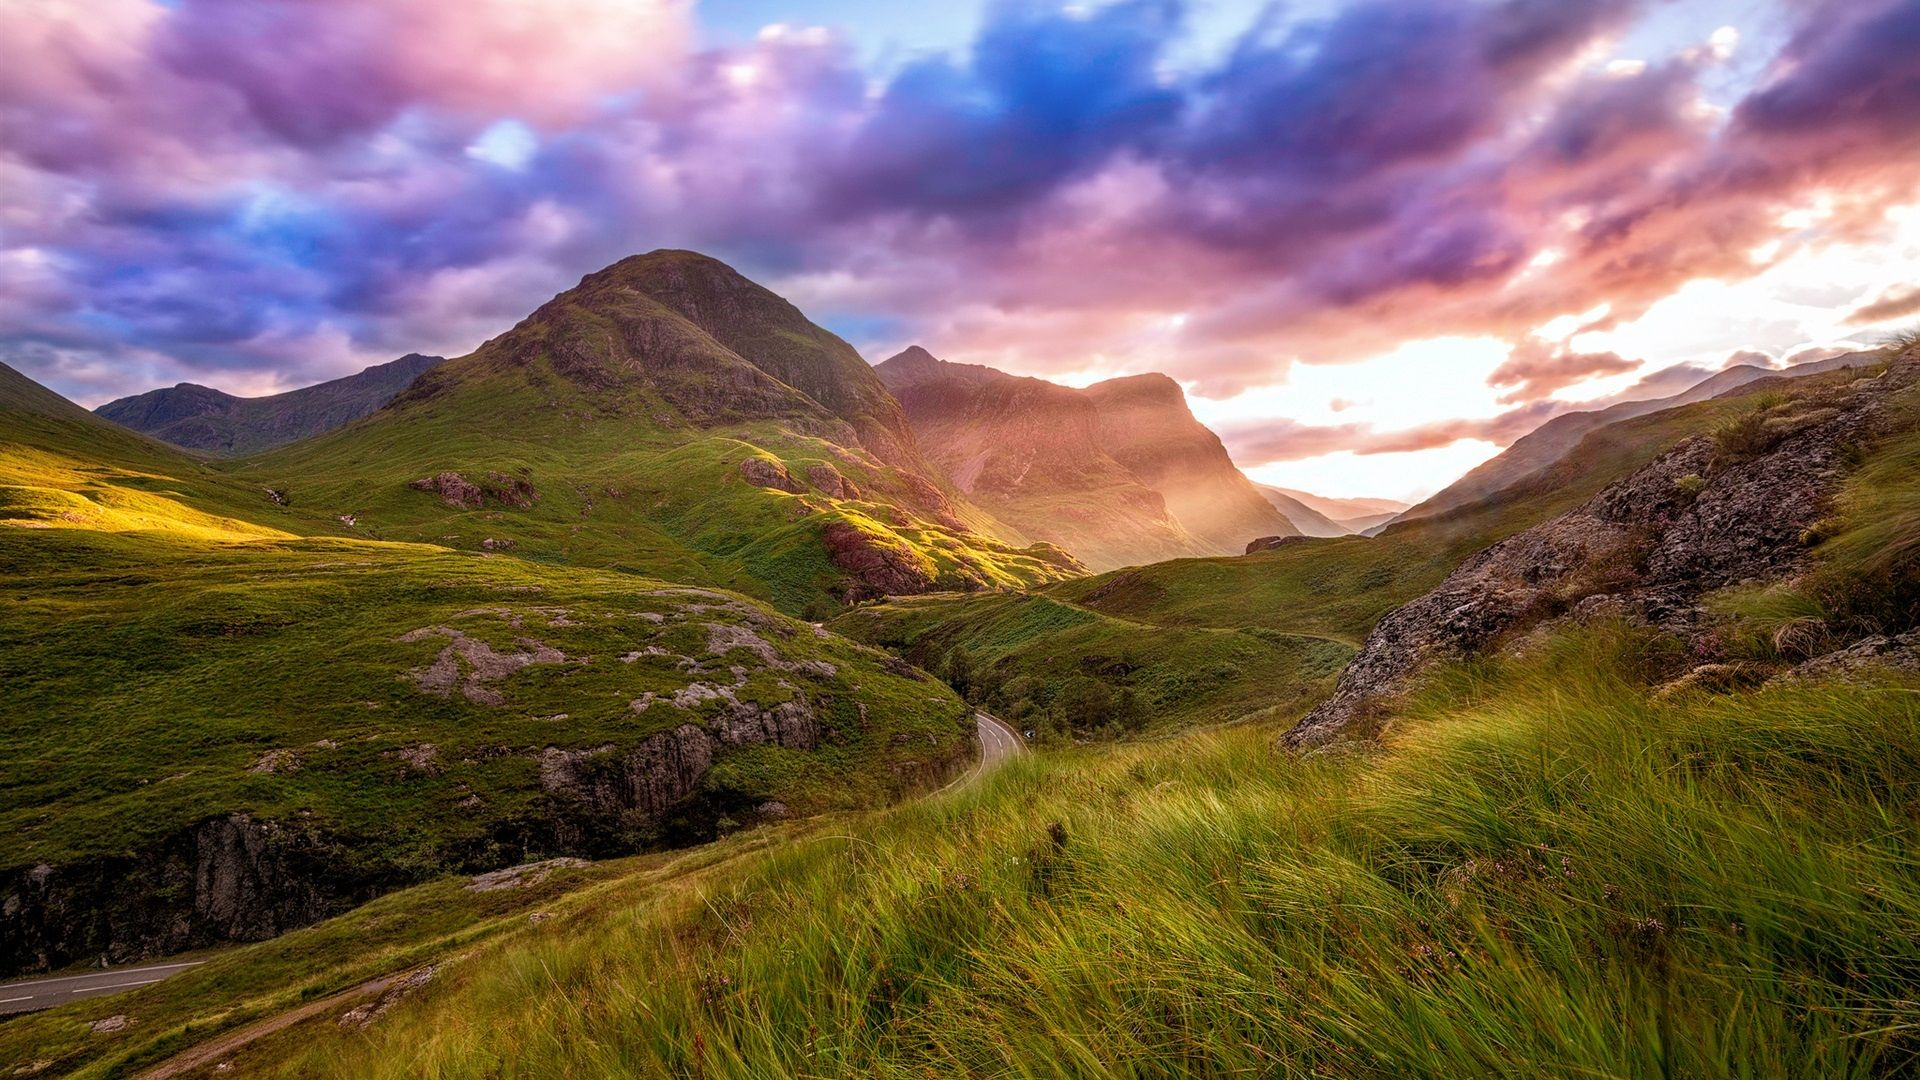 Pin by delaney holliman on art subjects scenery wallpaper mountains scotland - Highland park wallpaper ...